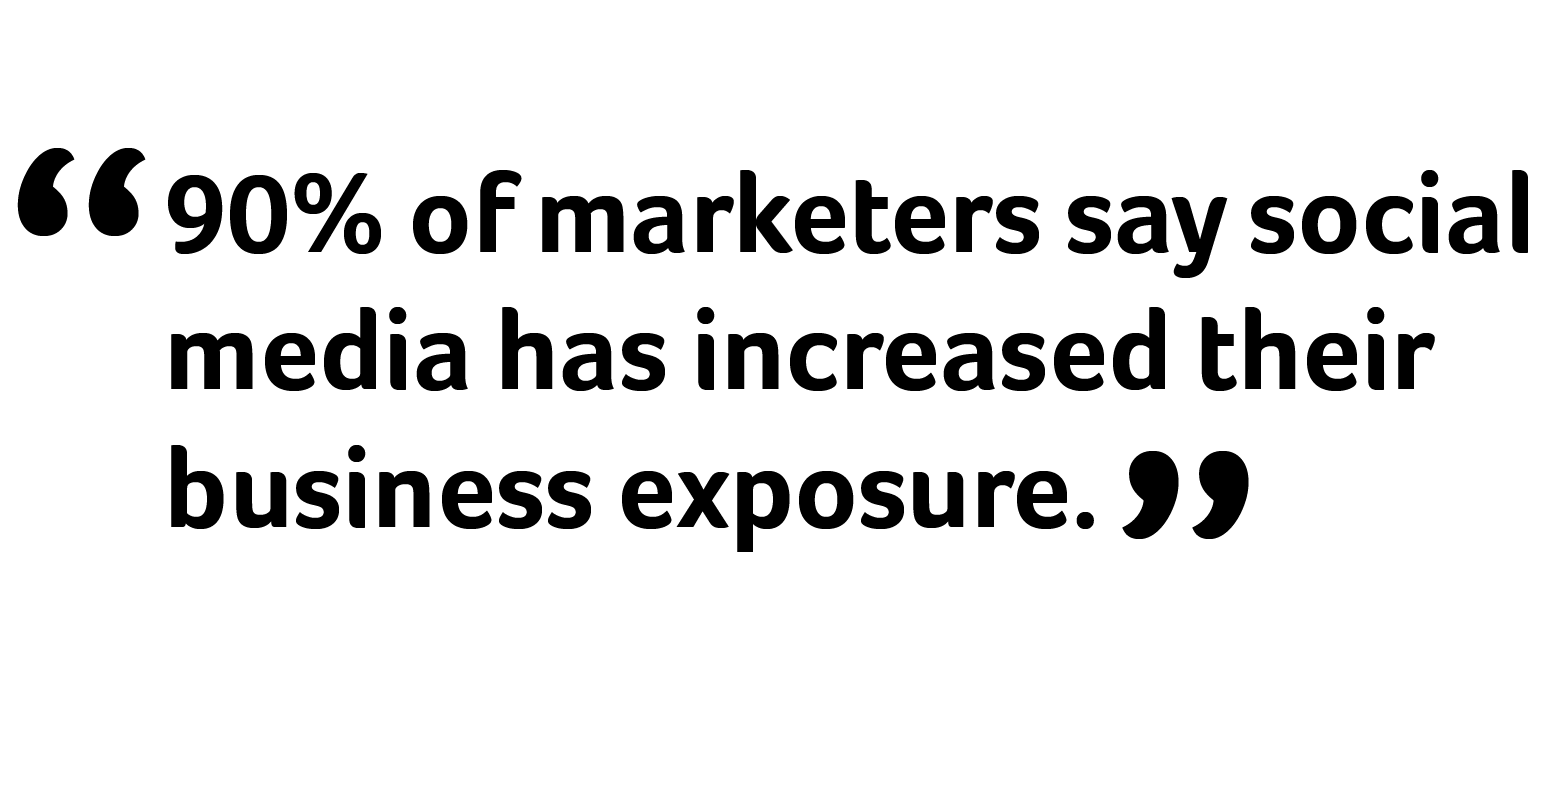 90% of marketers say social media has increased their business exposure quote